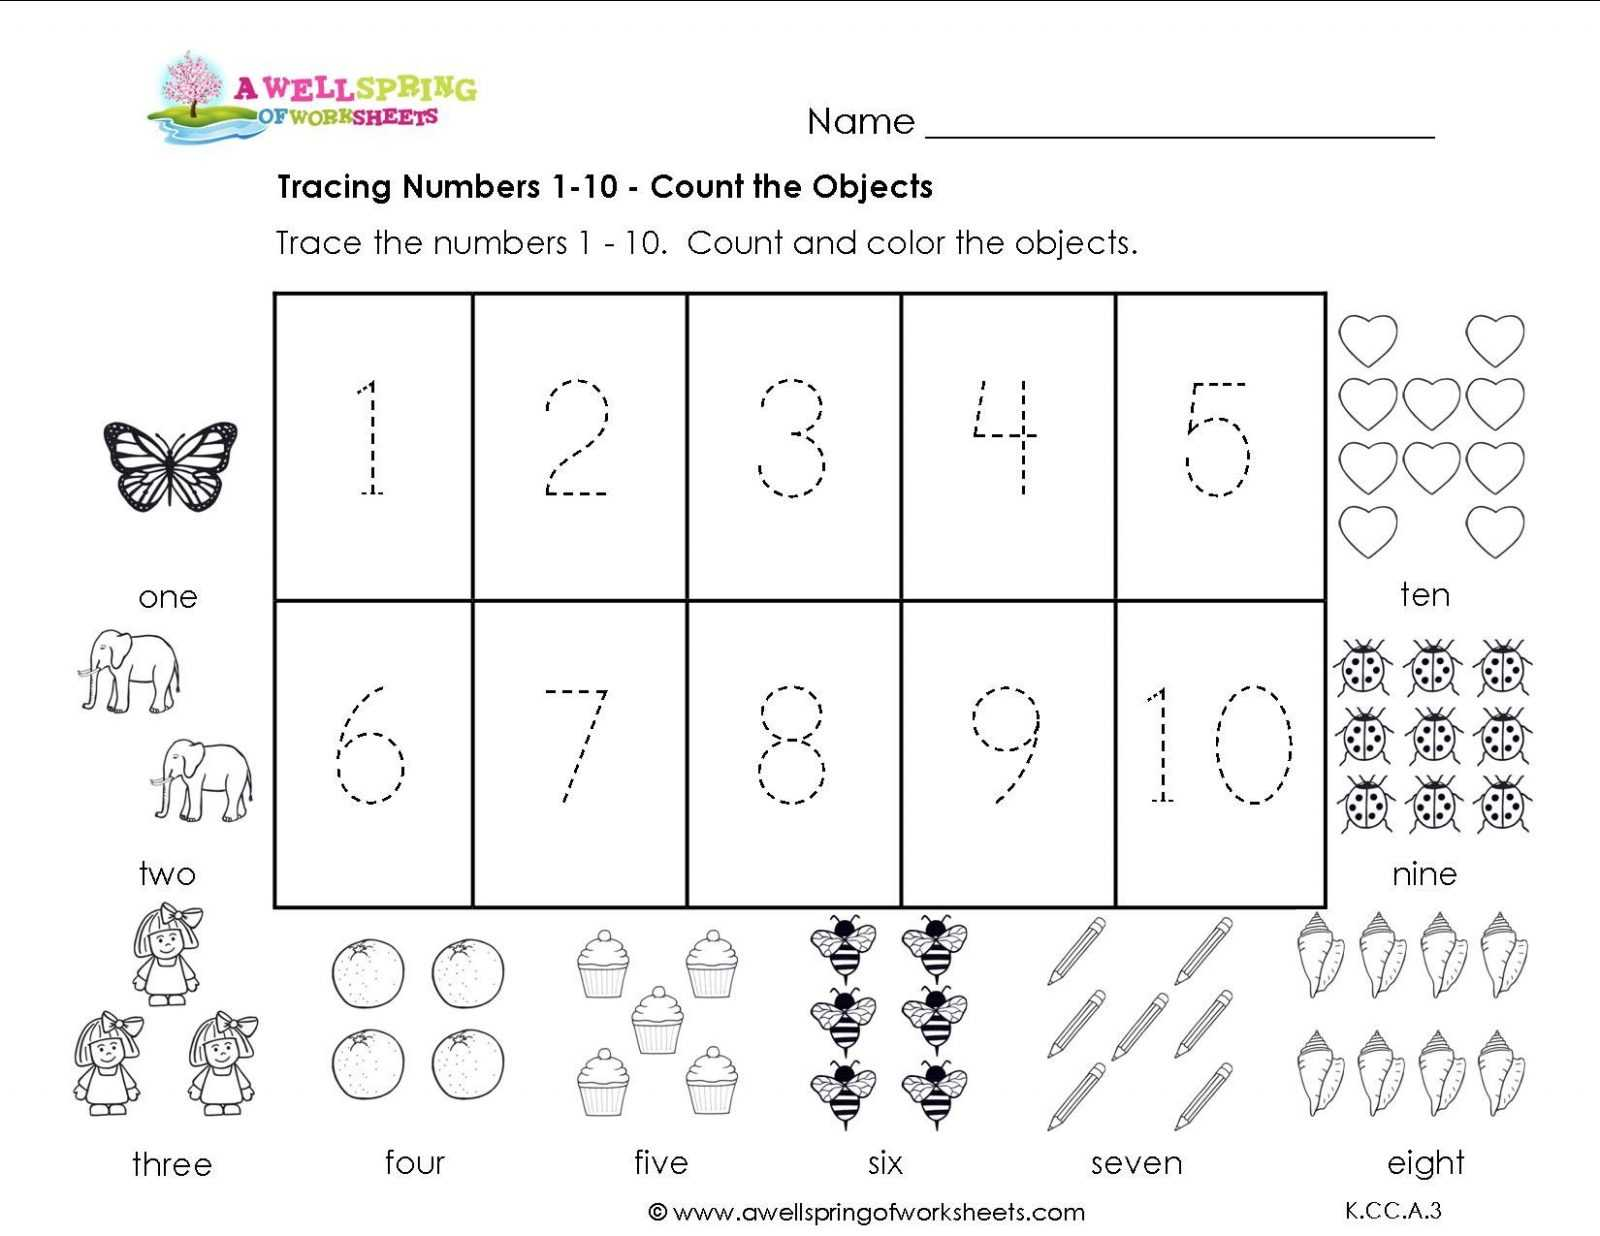 Preschool Name Tracing Worksheets with Preschool Number Worksheets Kindergarten Tracingsheets Countingble